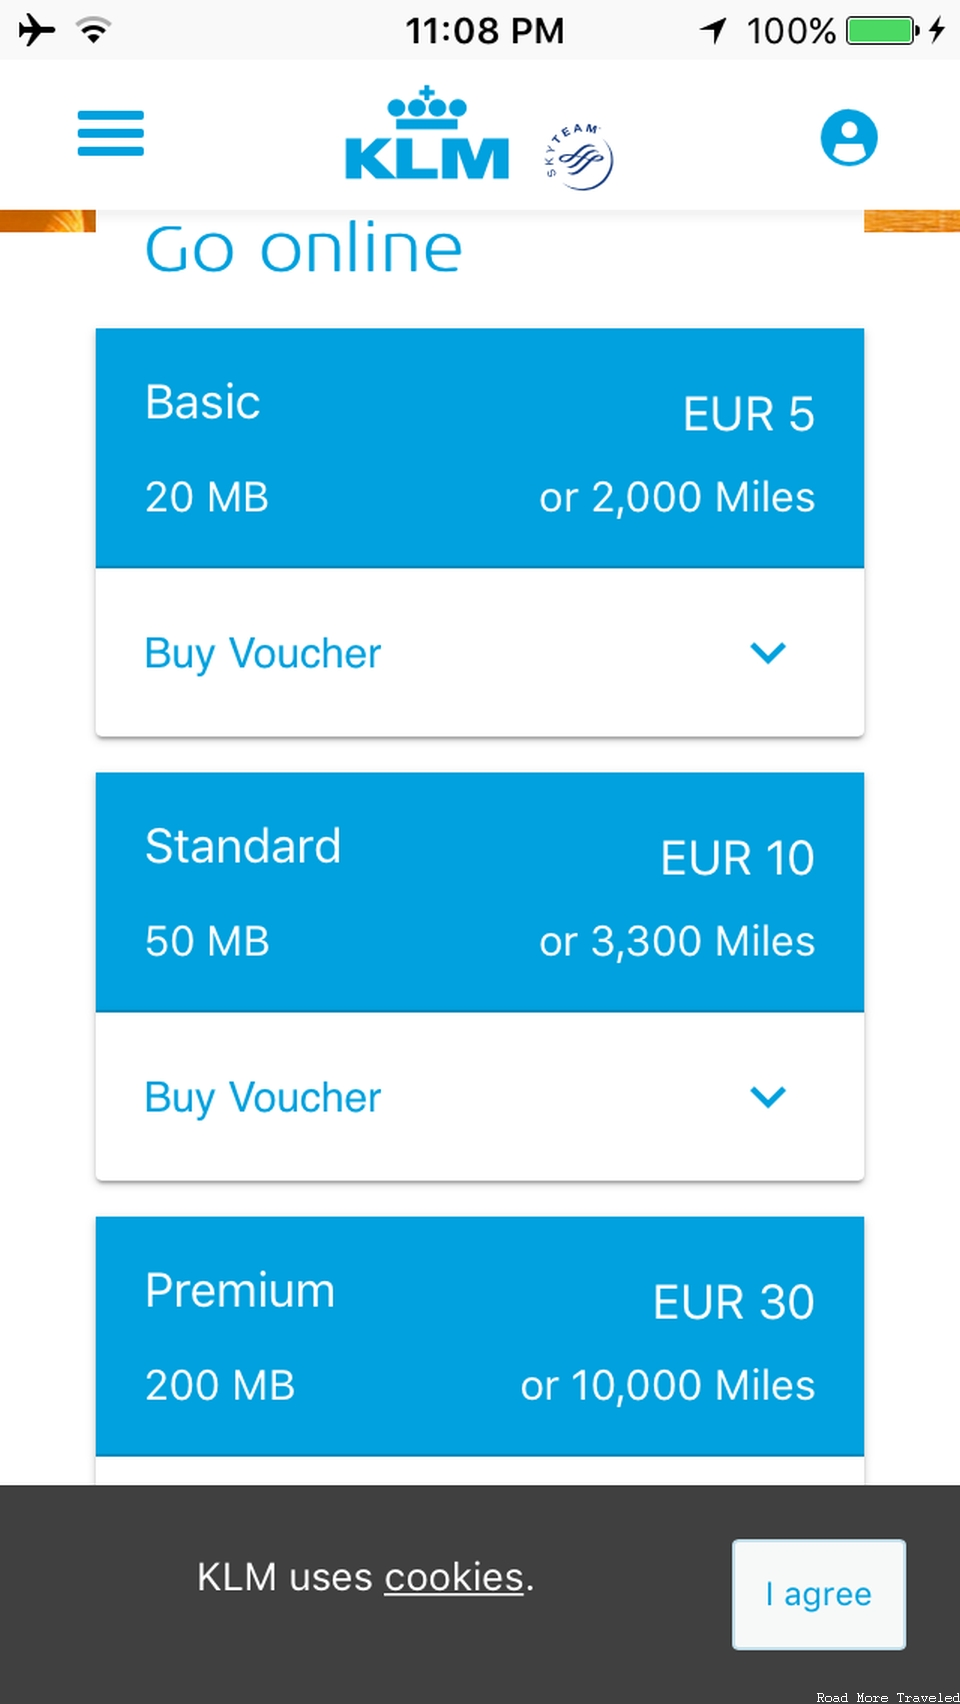 KLM 787-9 Economy Comfort - WiFi prices